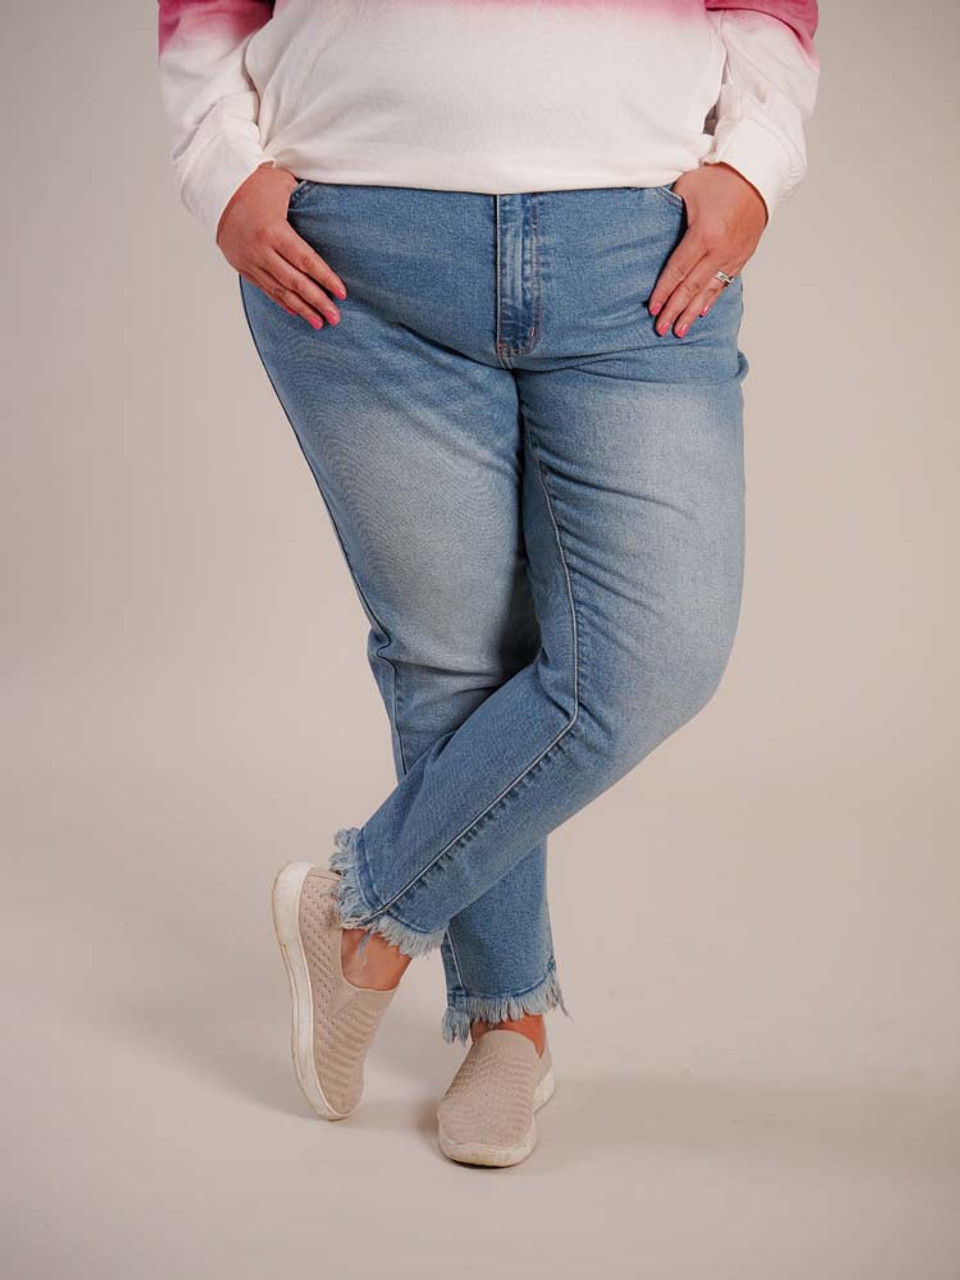 """Light blue denim jeans. Classic front and back pockets, relaxed fit, 27"""" inseam, frayed at ancles"""